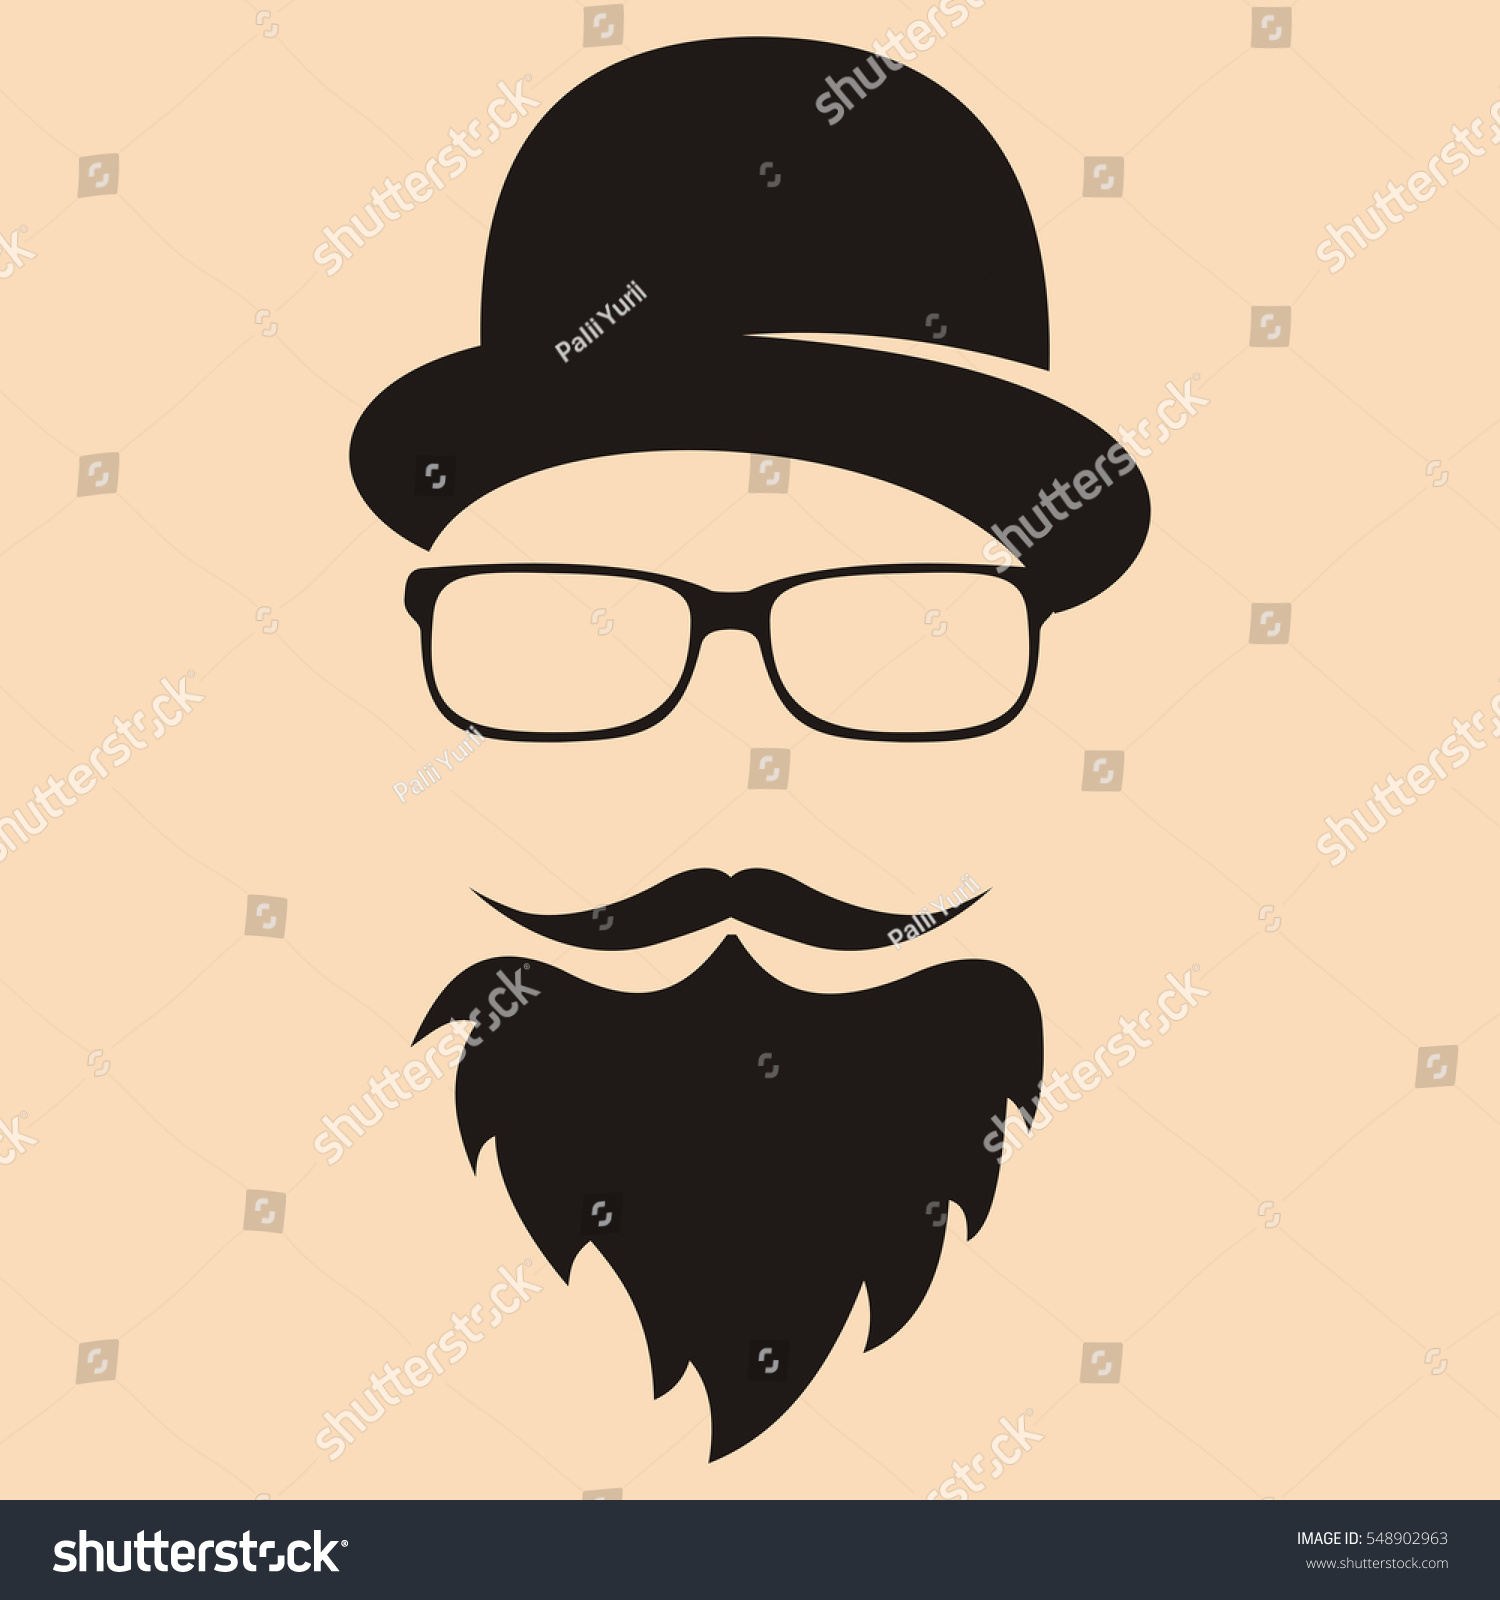 Fashion Silhouette Hipster Style Hat Glasses Stock Vector 548902963 Shutterstock